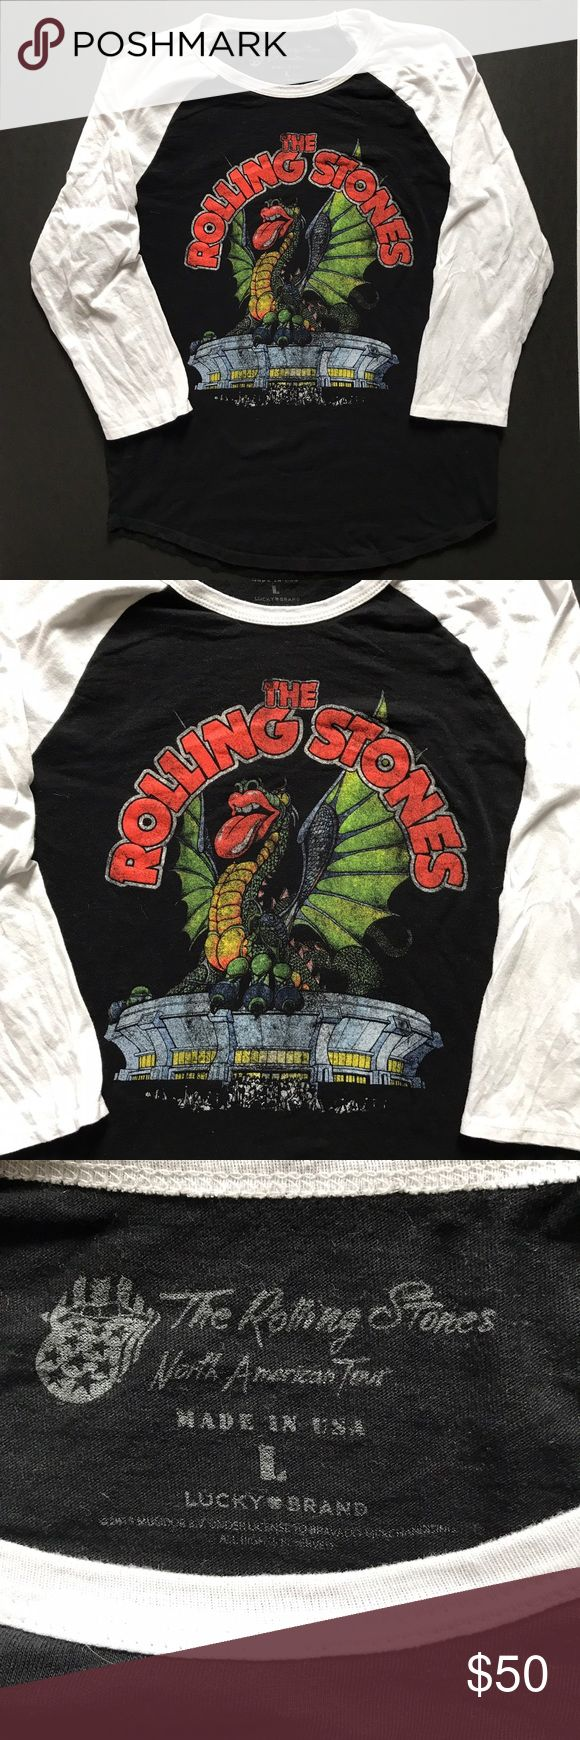 Lucky Brand The Rolling Stones North American Tour This Lucky Brand Rolling Stones North American Tour shirt is in overall good used condition.  There are no stains or holes but there is some light wash wear.  100% cotton.  Bust 20, length 26, 3/4 sleeves.  From a smoke free, pet friendly home. Lucky Brand Shirts Tees - Long Sleeve